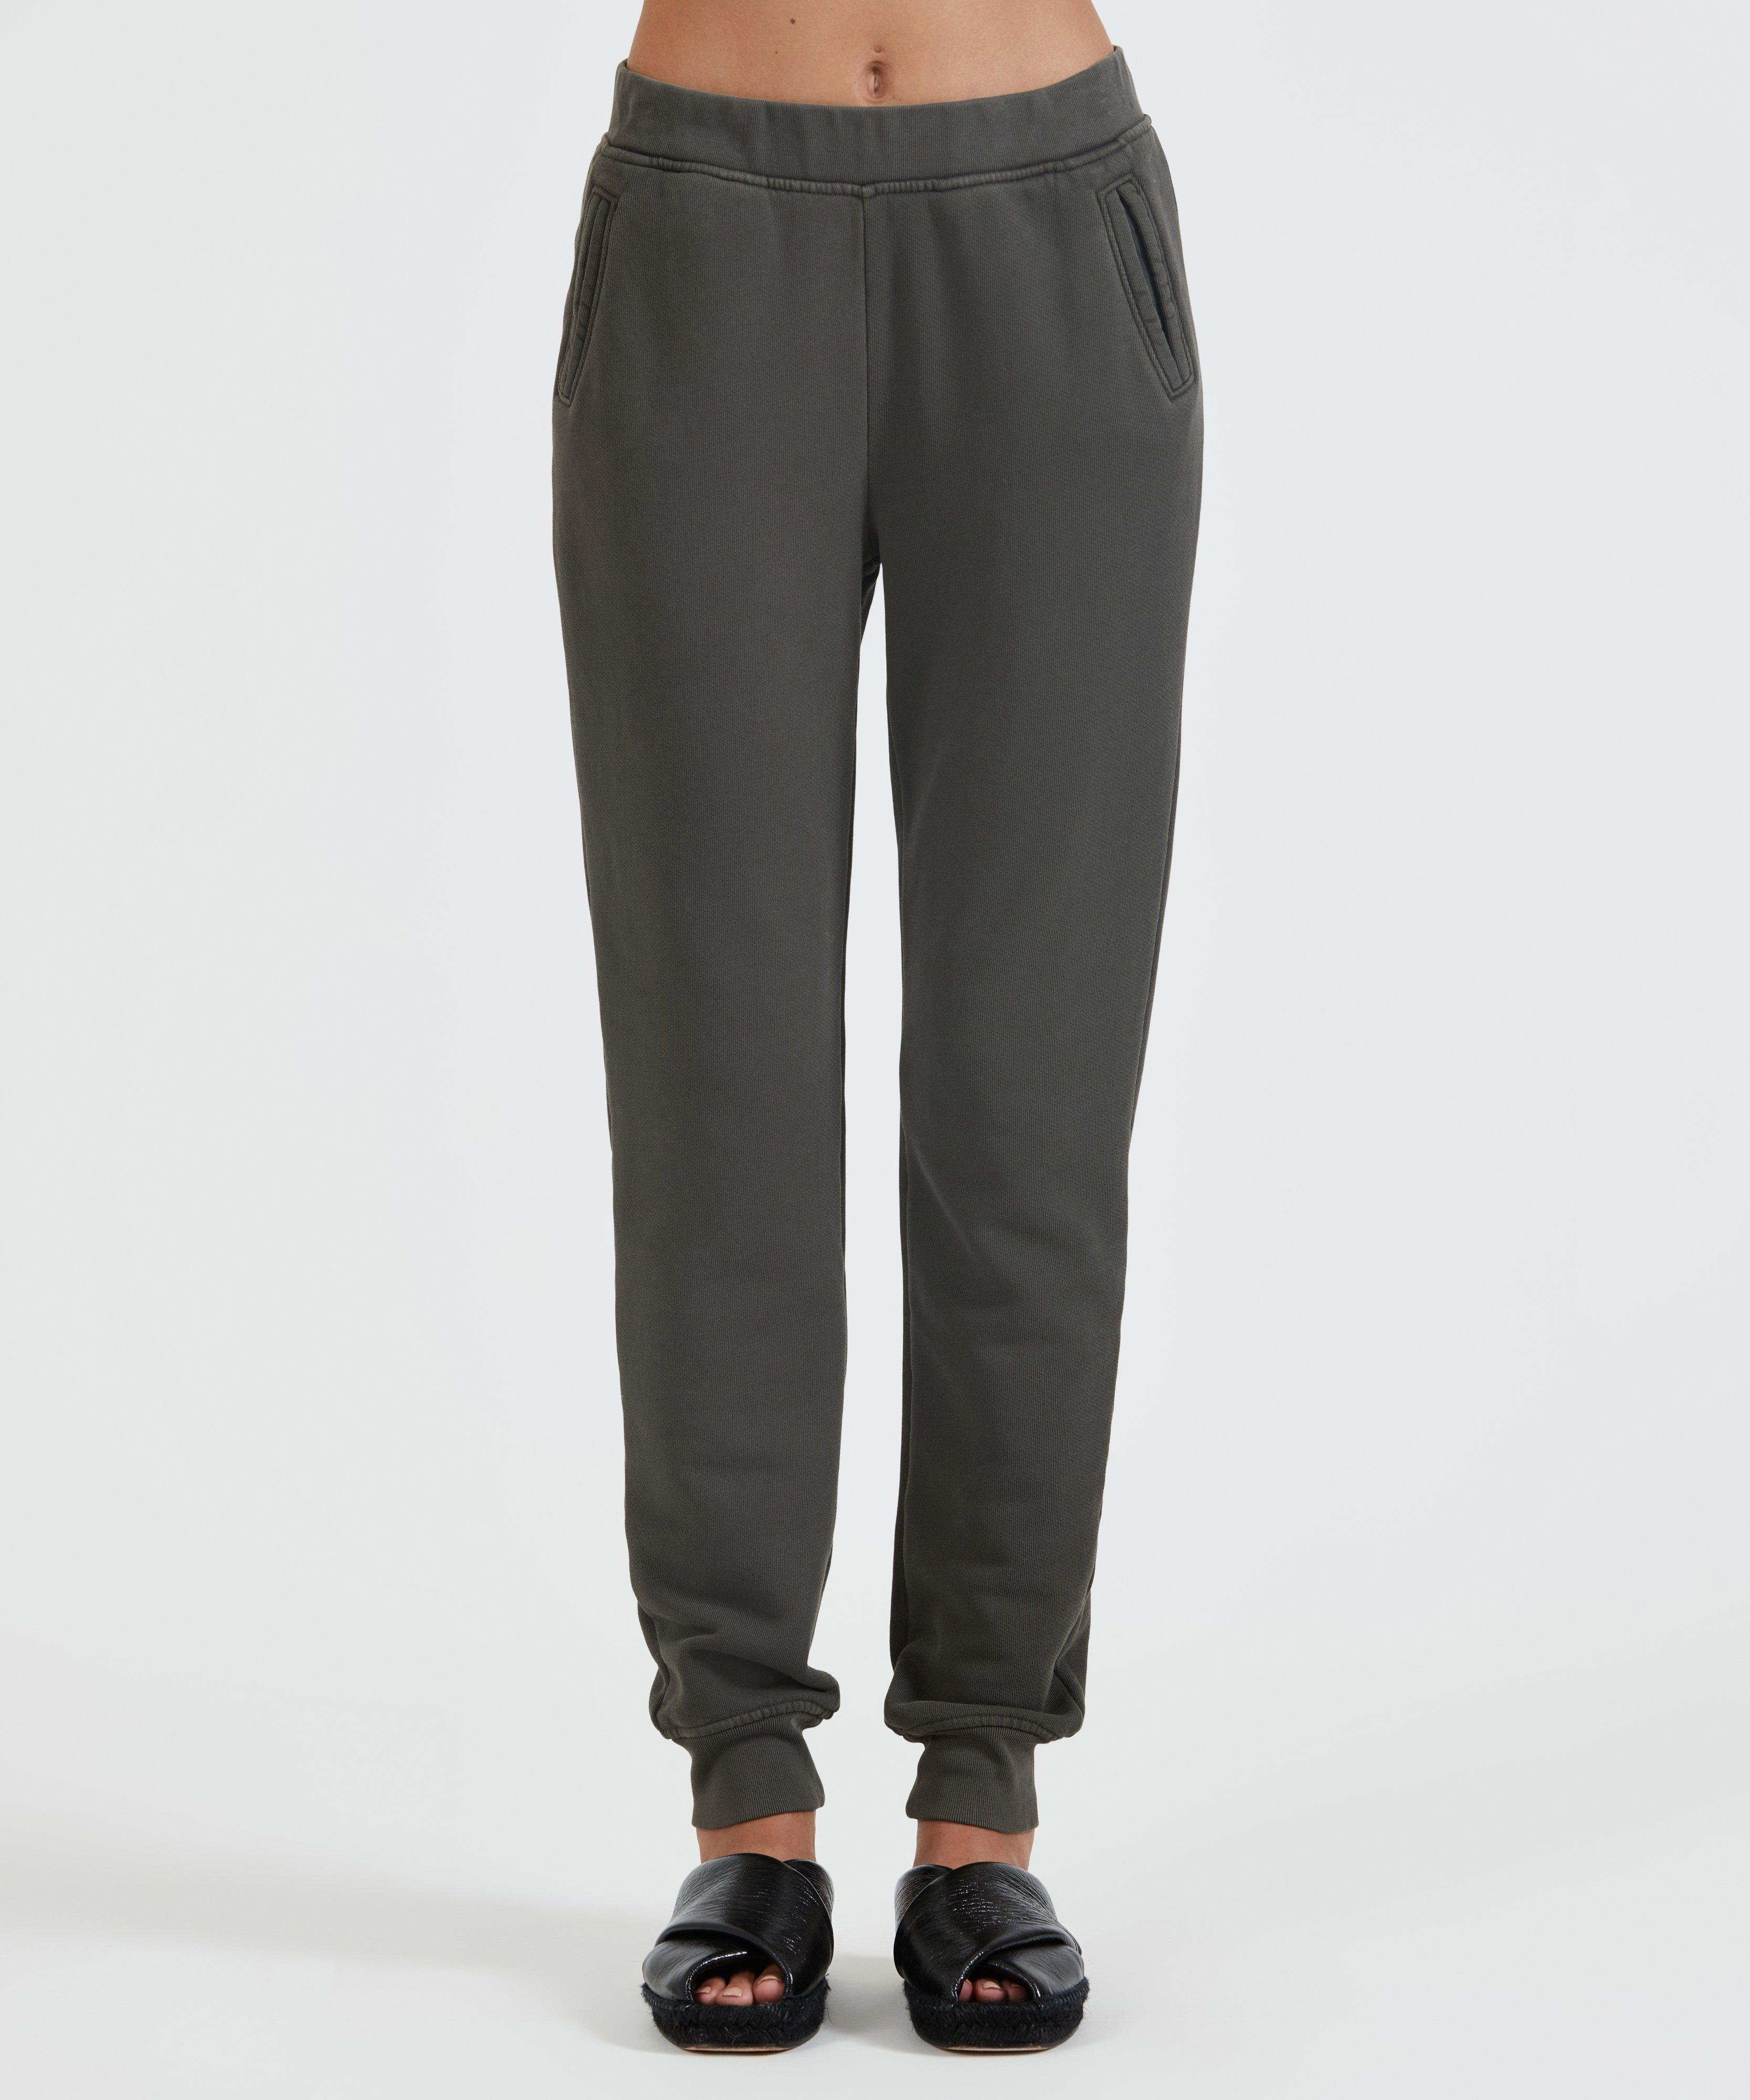 French Terry Sweatpant - Chestnut